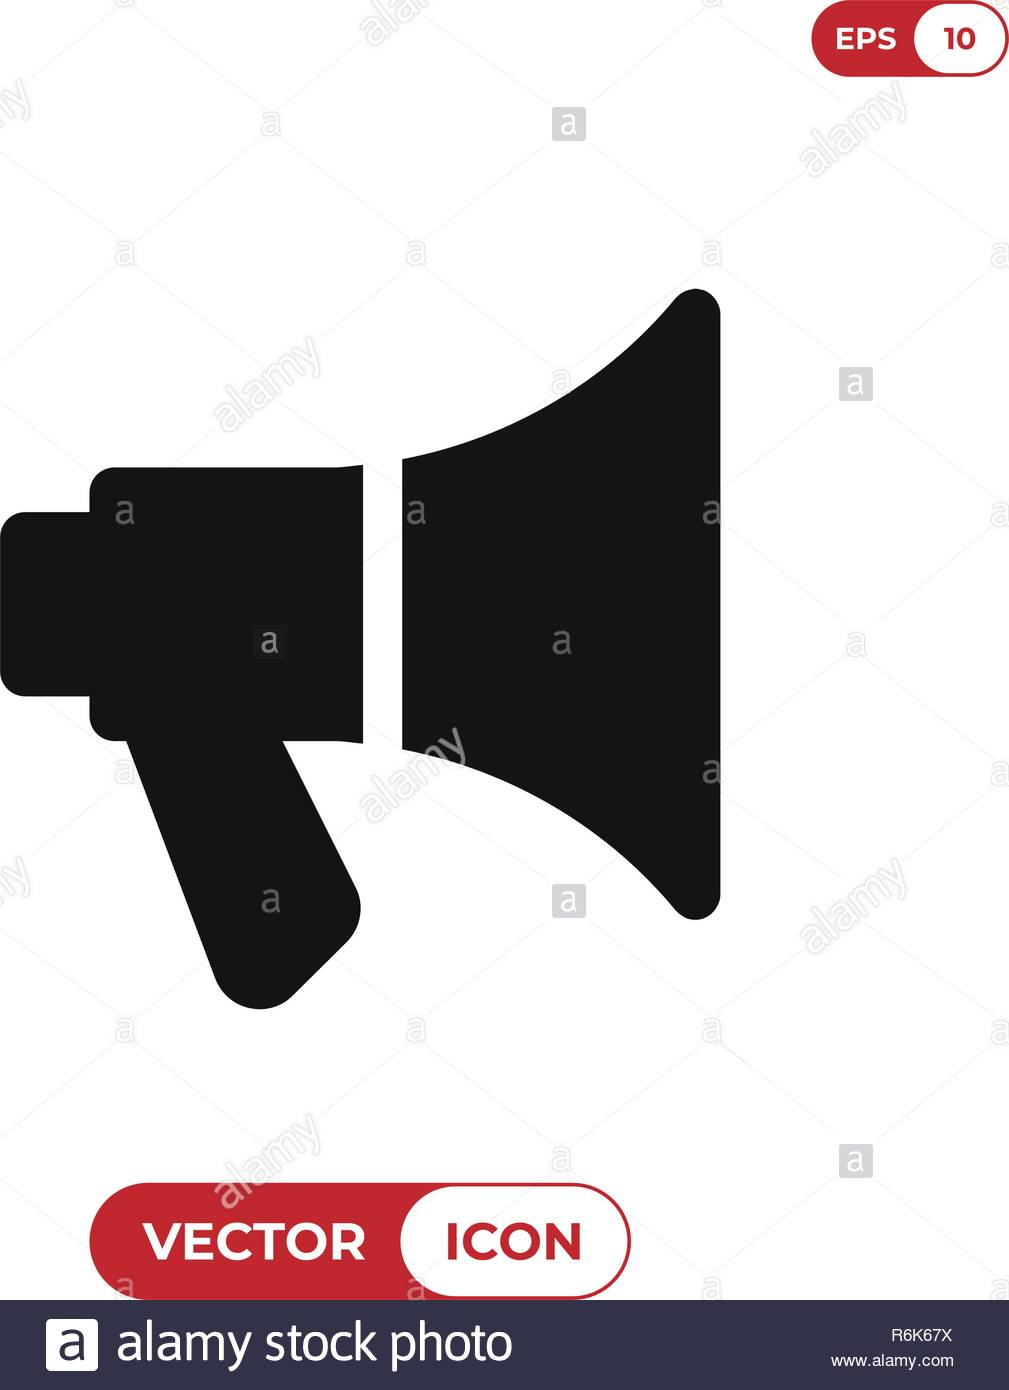 Megaphone icon vector illustration - Stock Vector